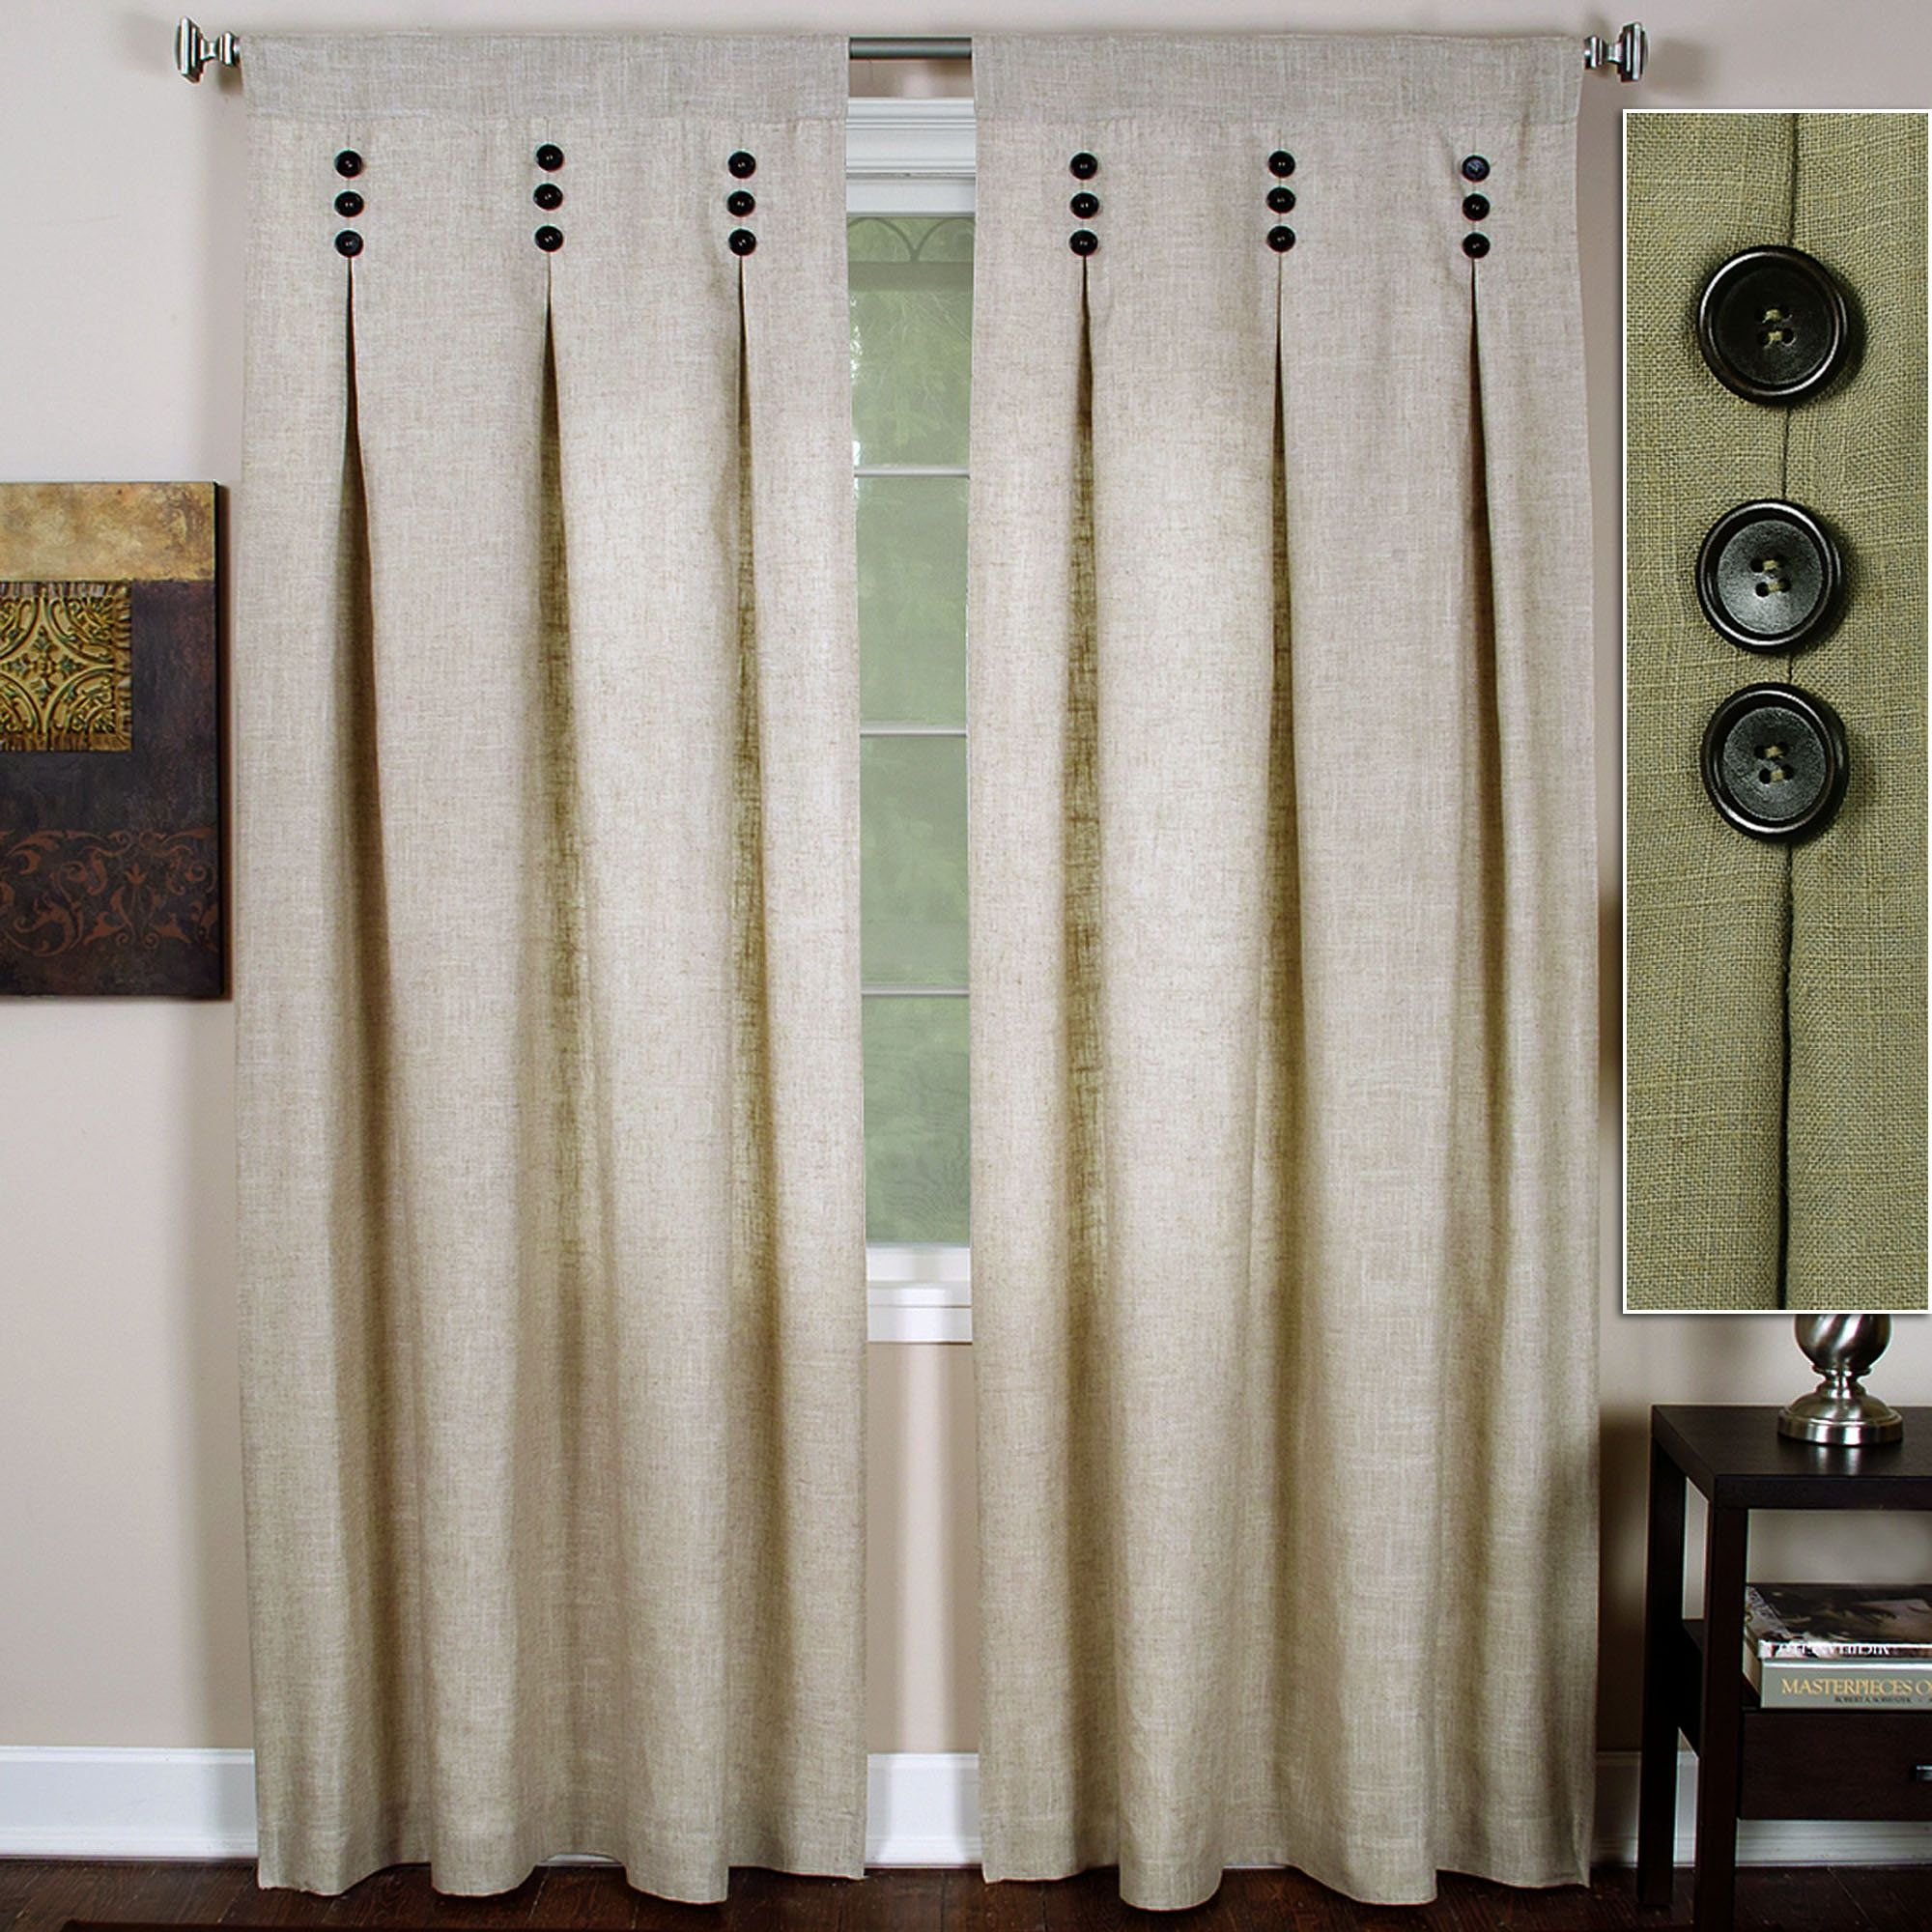 curtains inverted box pleated | Inverted Pleat panels offer a ...